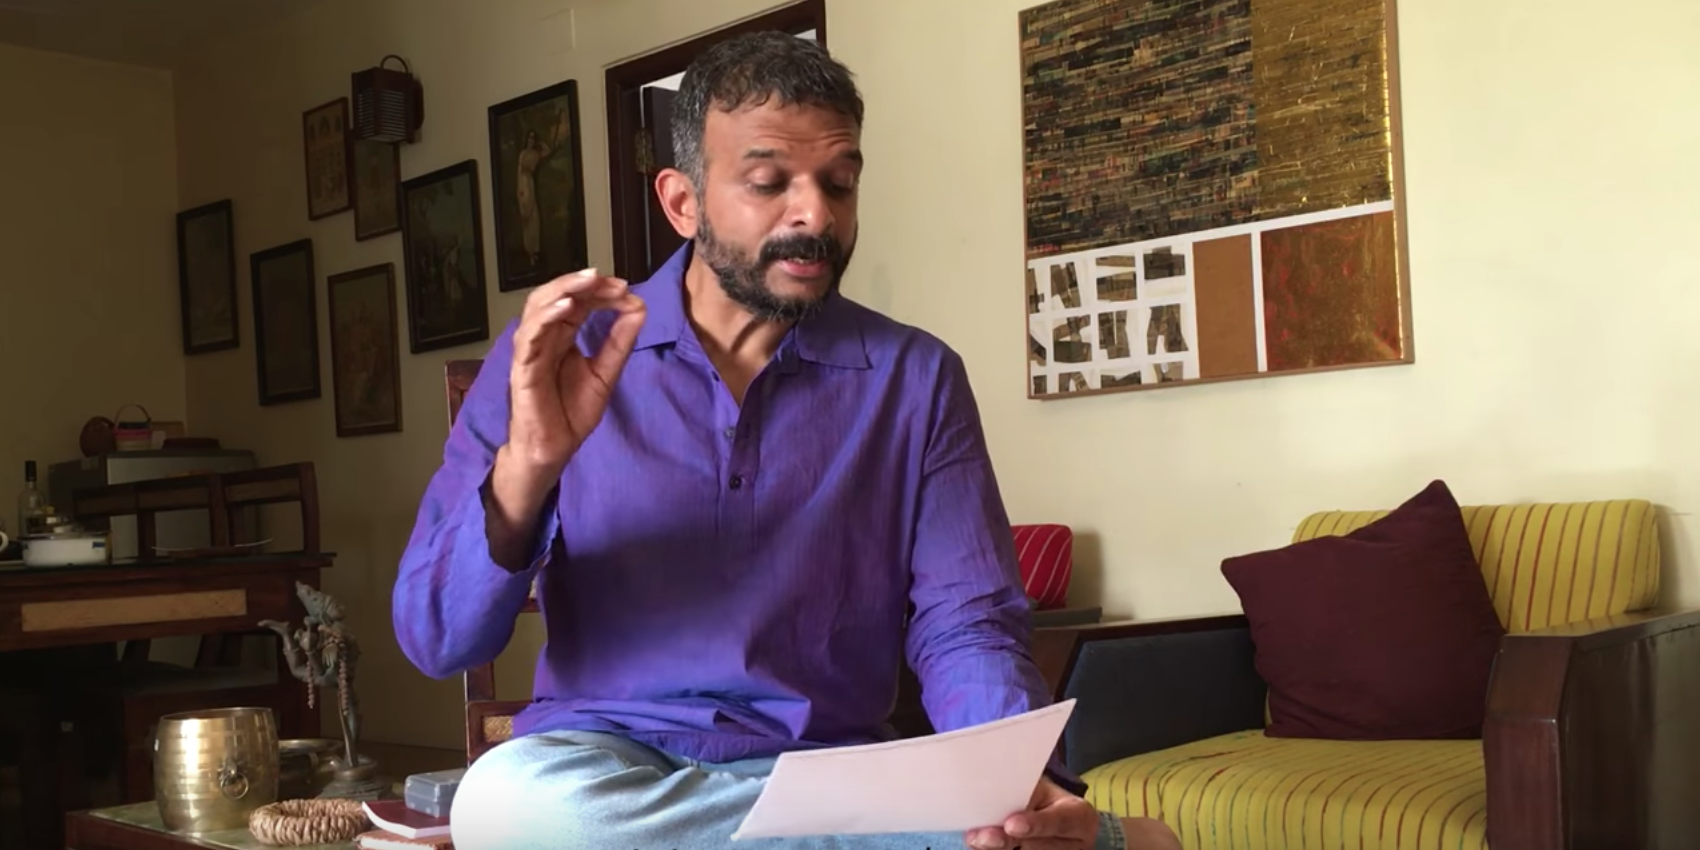 Carnatic music vocalist TM Krishna said harassment in India's classical arts circles is an open secret. (Credit: YouTube)